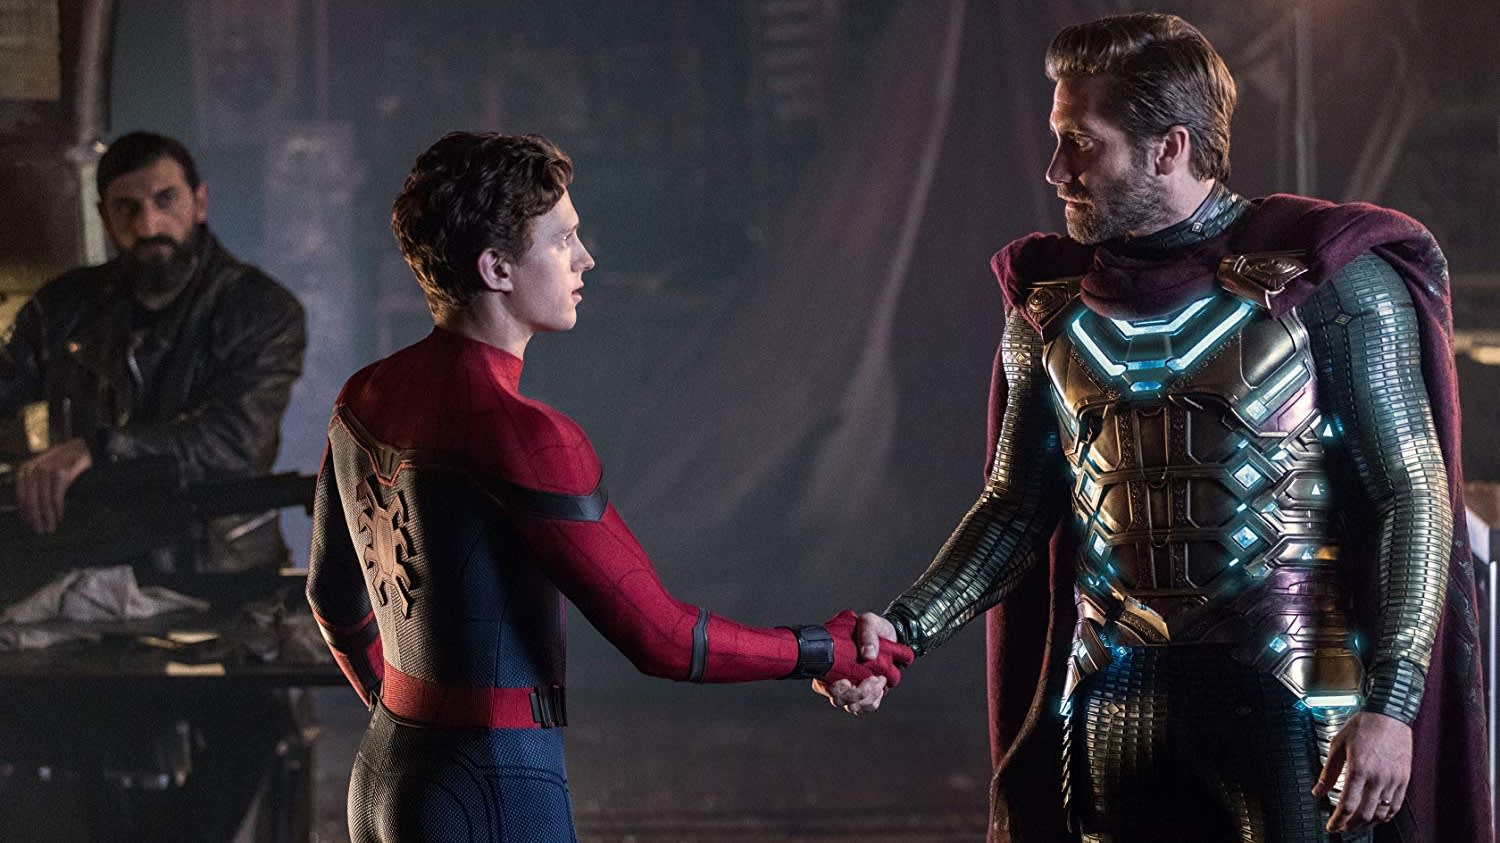 Netflix strikes deal for streaming rights to Sony films, including upcoming 'Spider-Man' movies